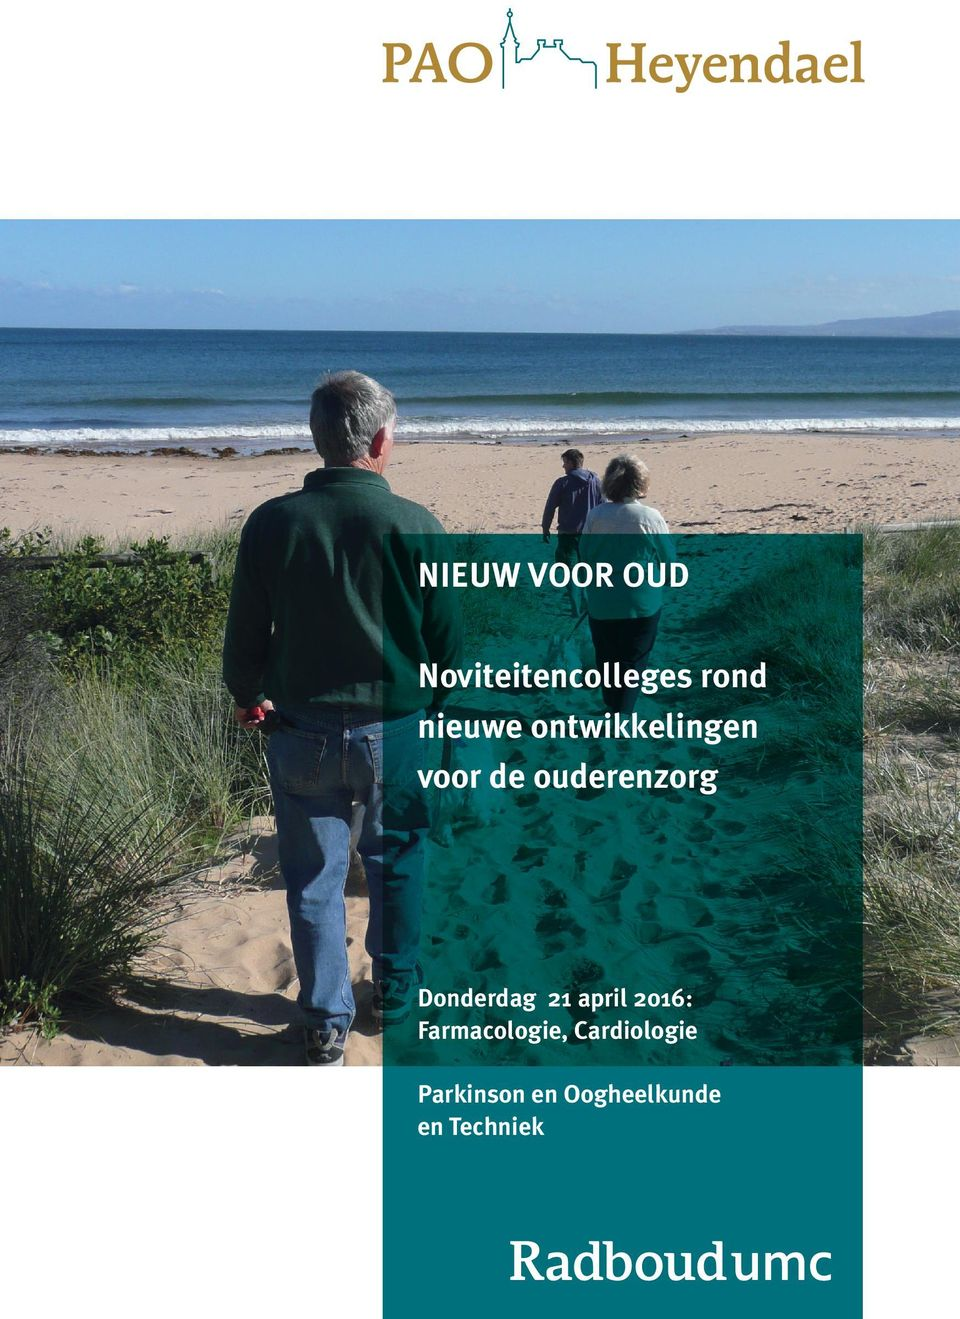 Donderdag 21 april 2016: Farmacologie,